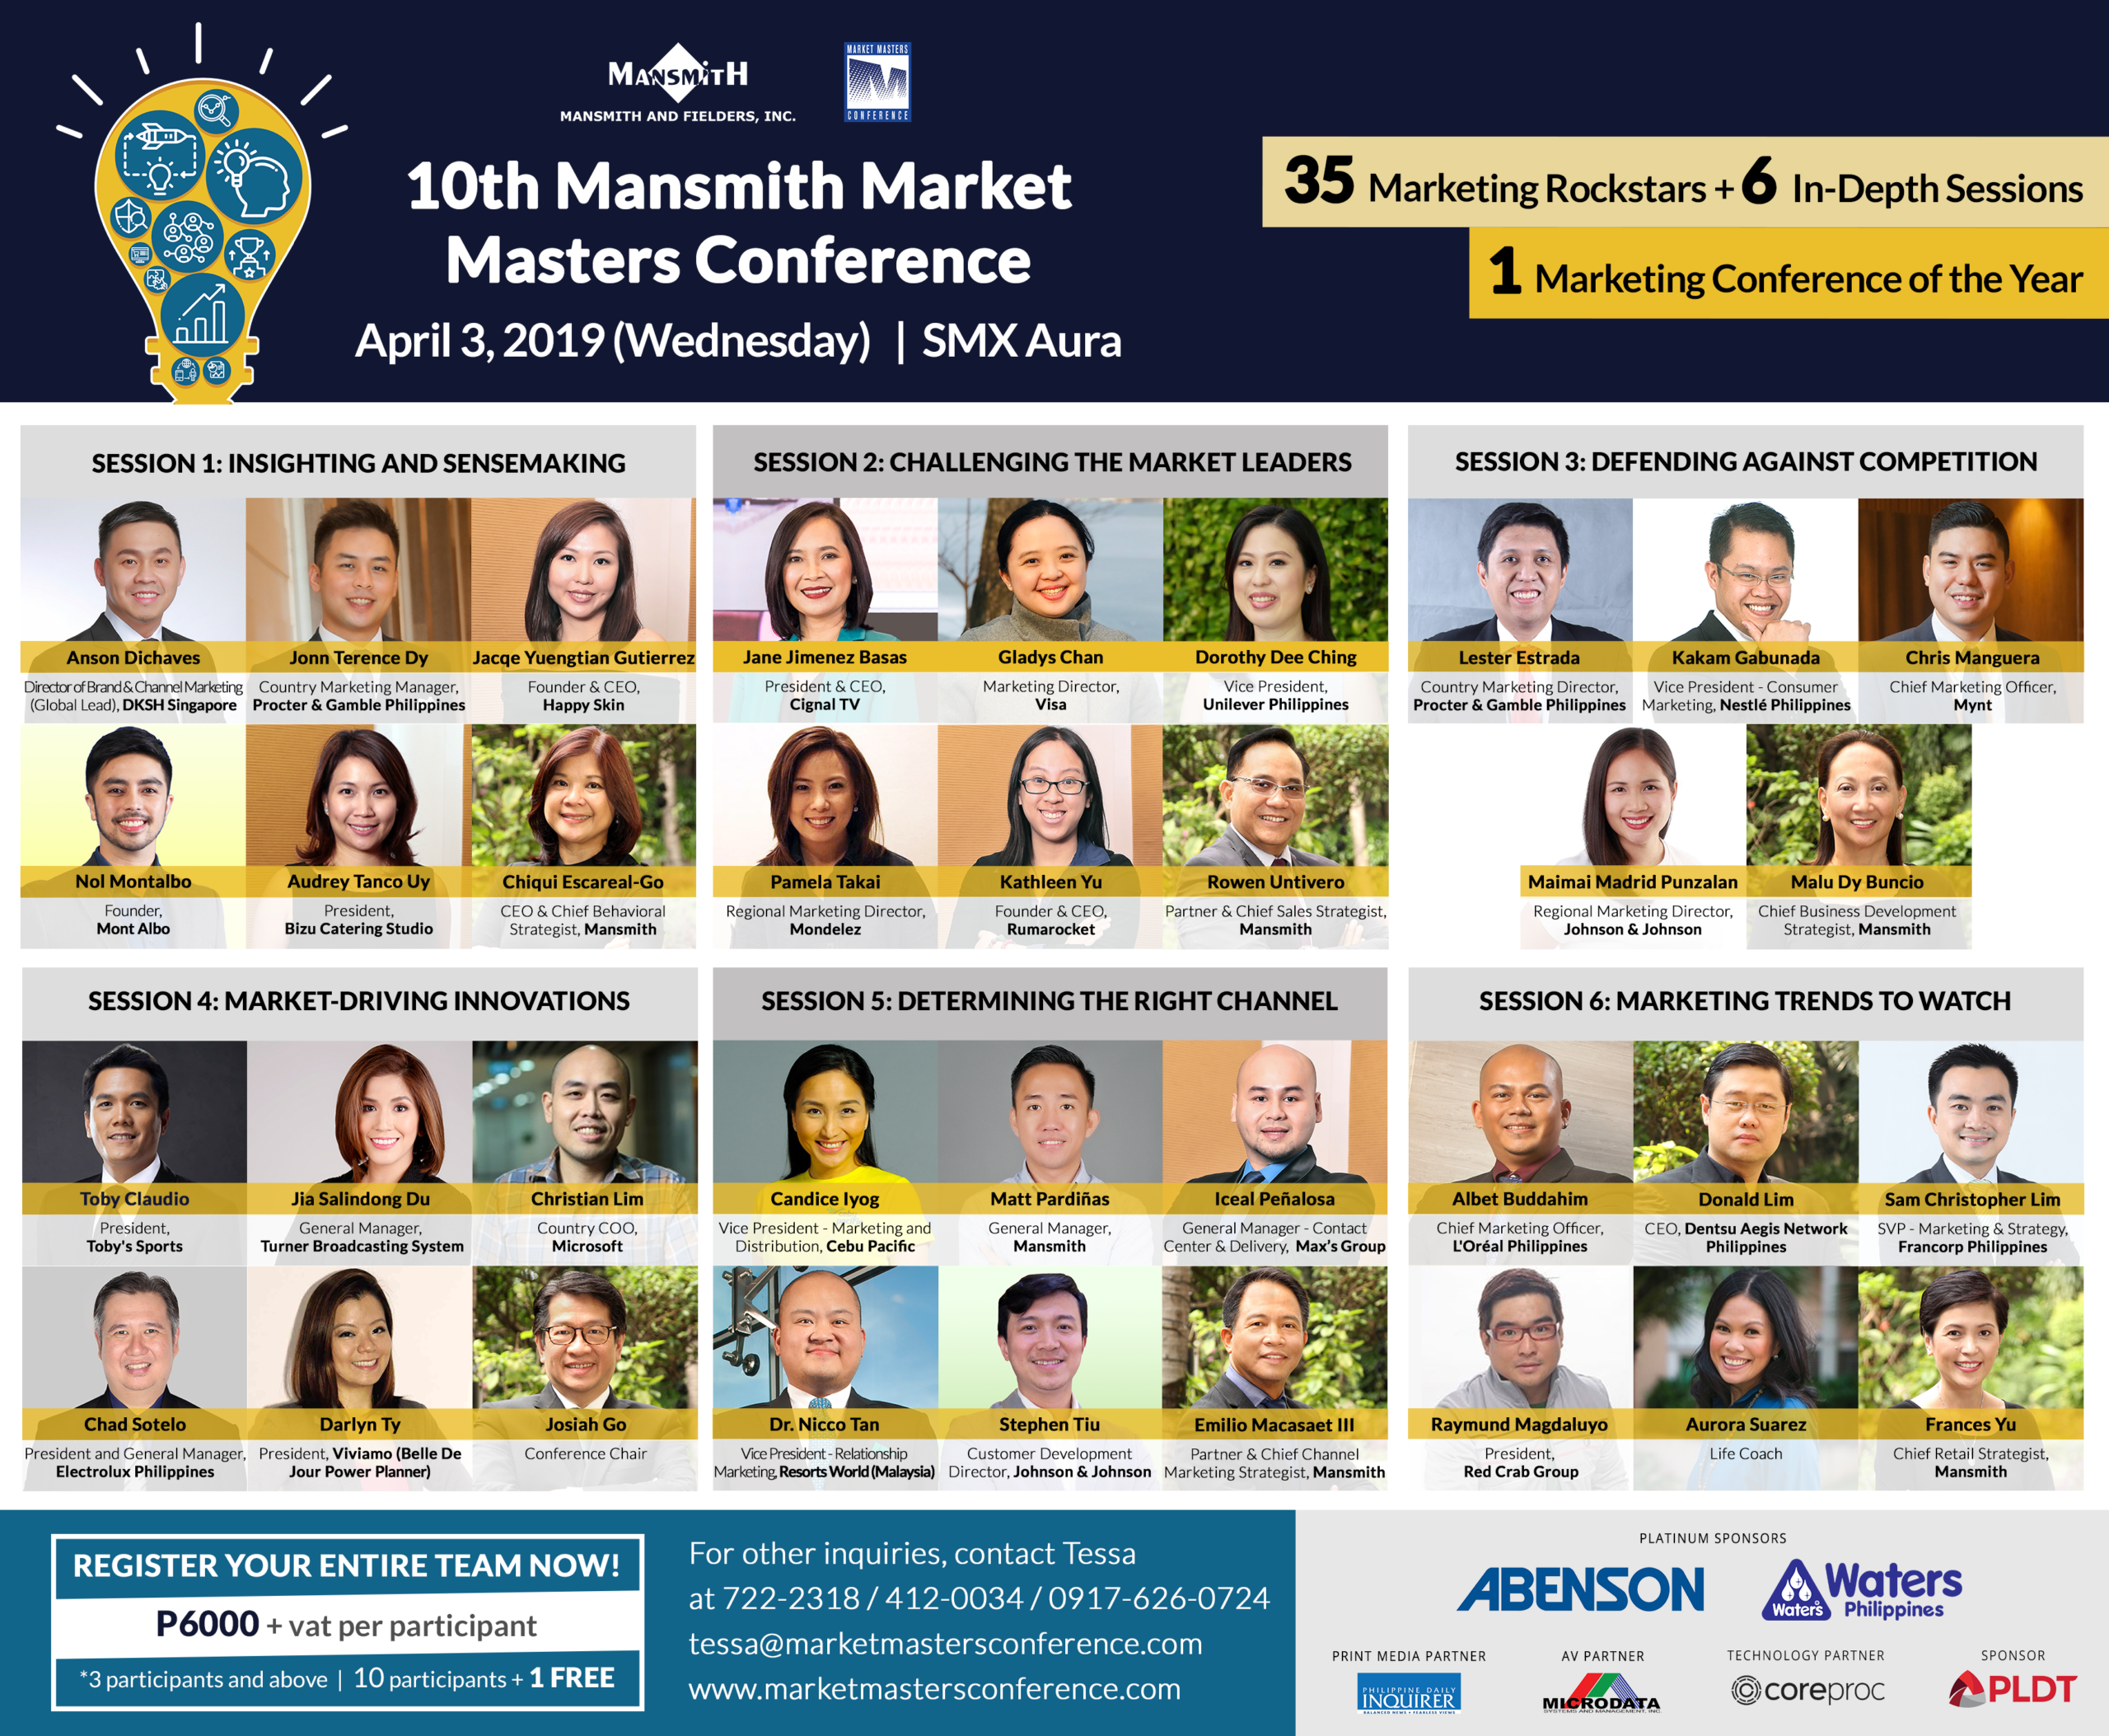 The 10th Mansmith Market Masters Conference